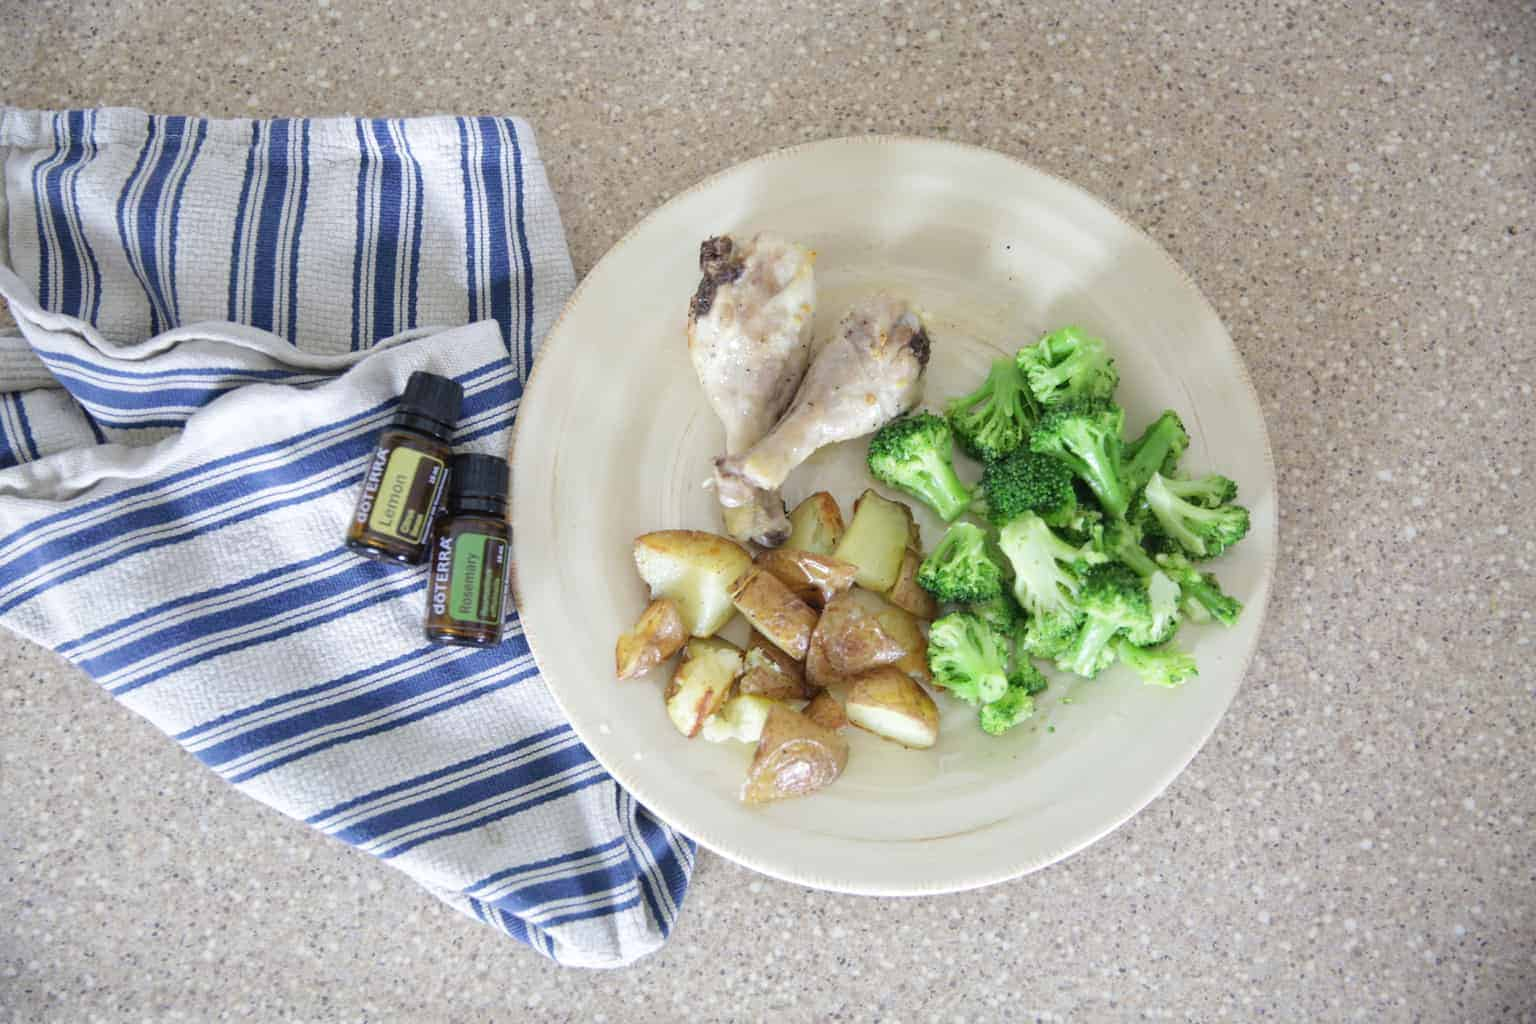 lemon rosemary chicken legs with broccoli and potatoes